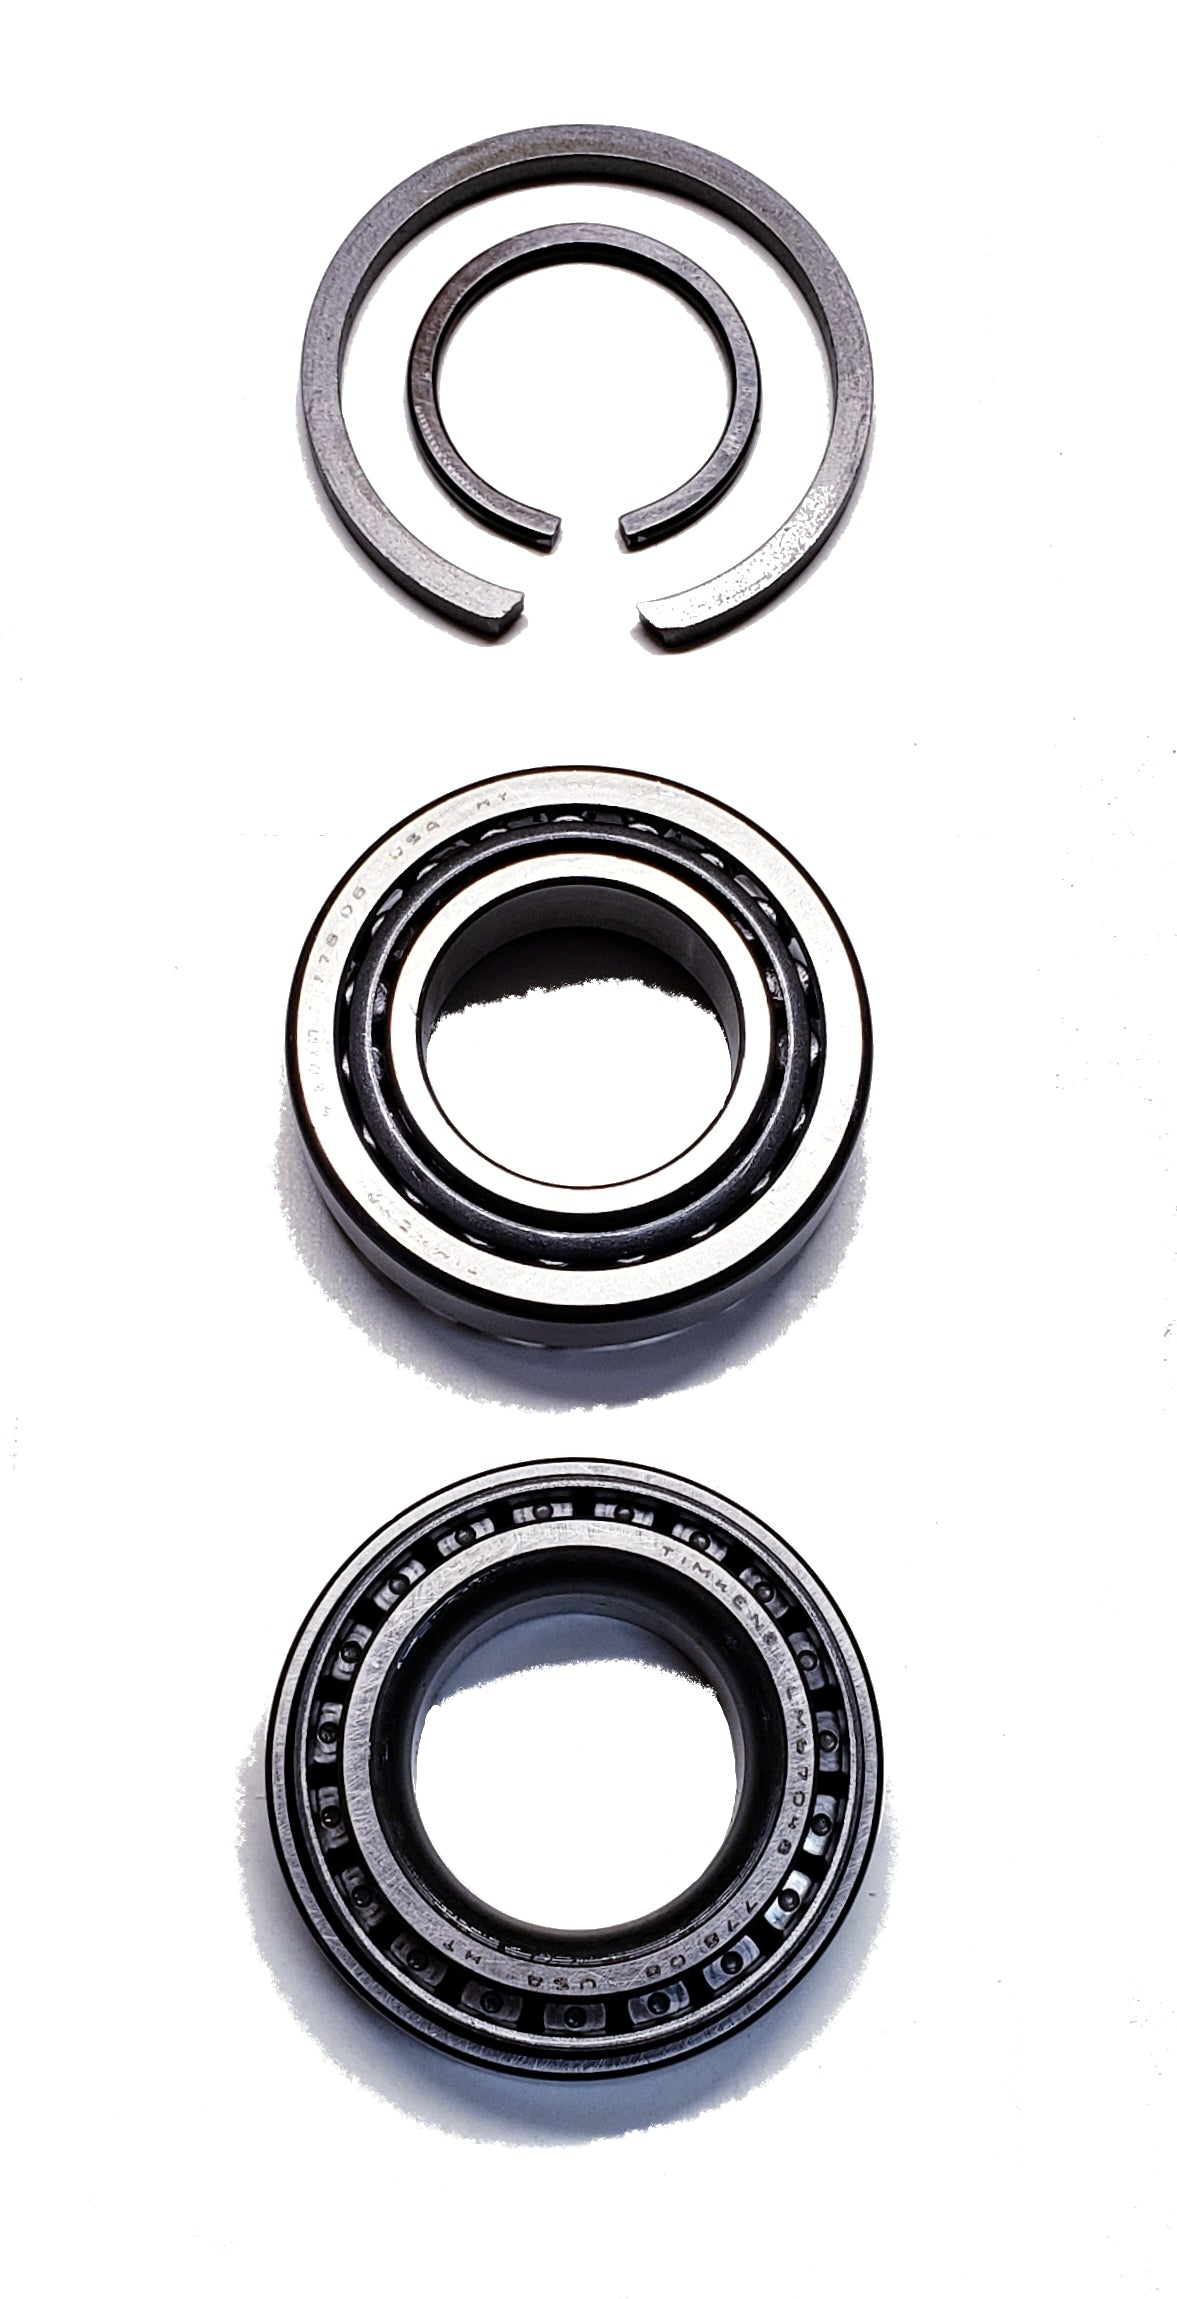 John Deere Original Equipment Tapered Roller Bearing - AE42998